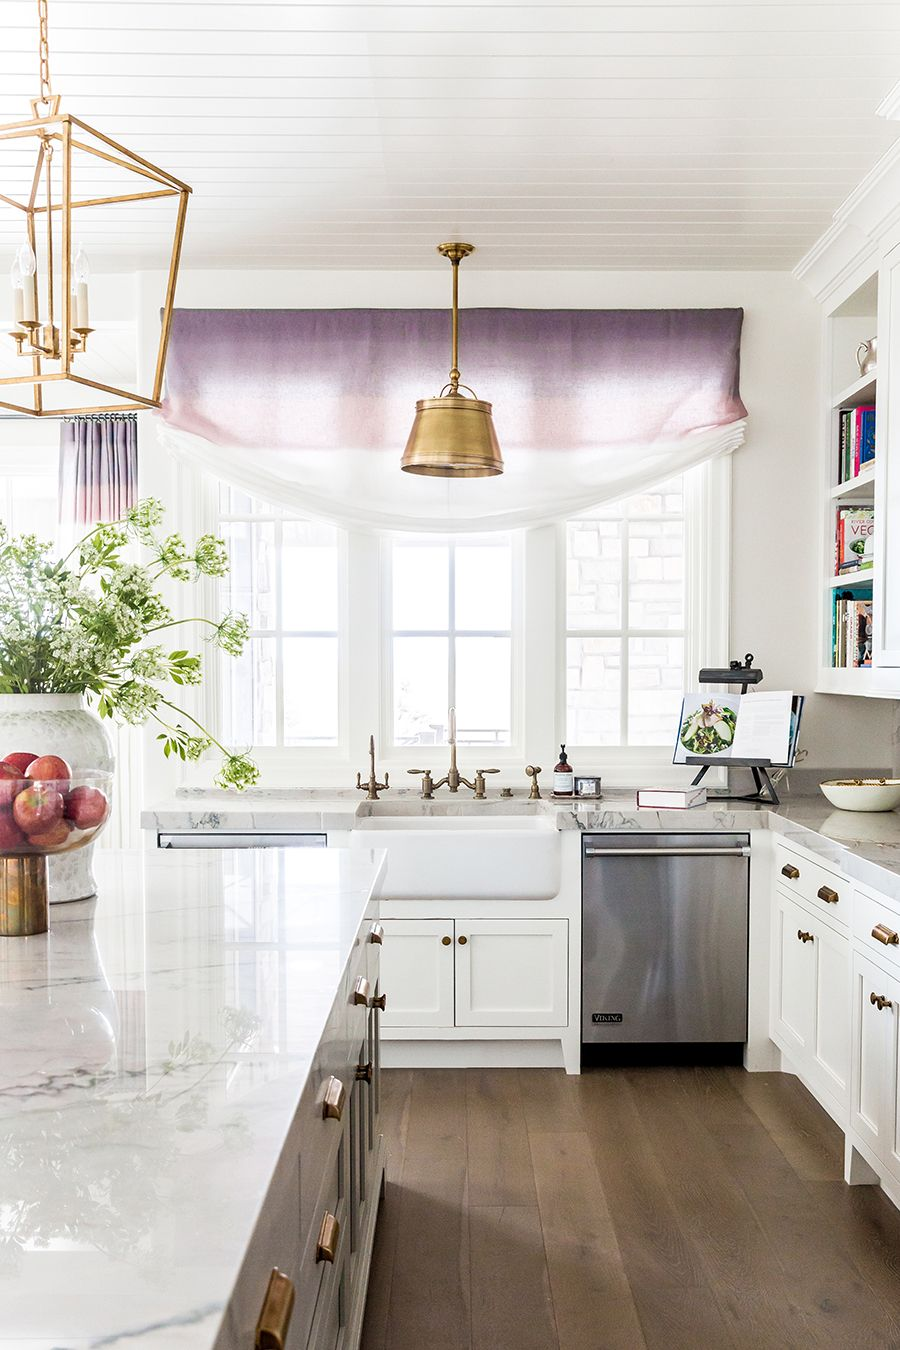 Window kitchen cabinets  home tour kitchen reveal  pinterest  kitchens dress shoes and